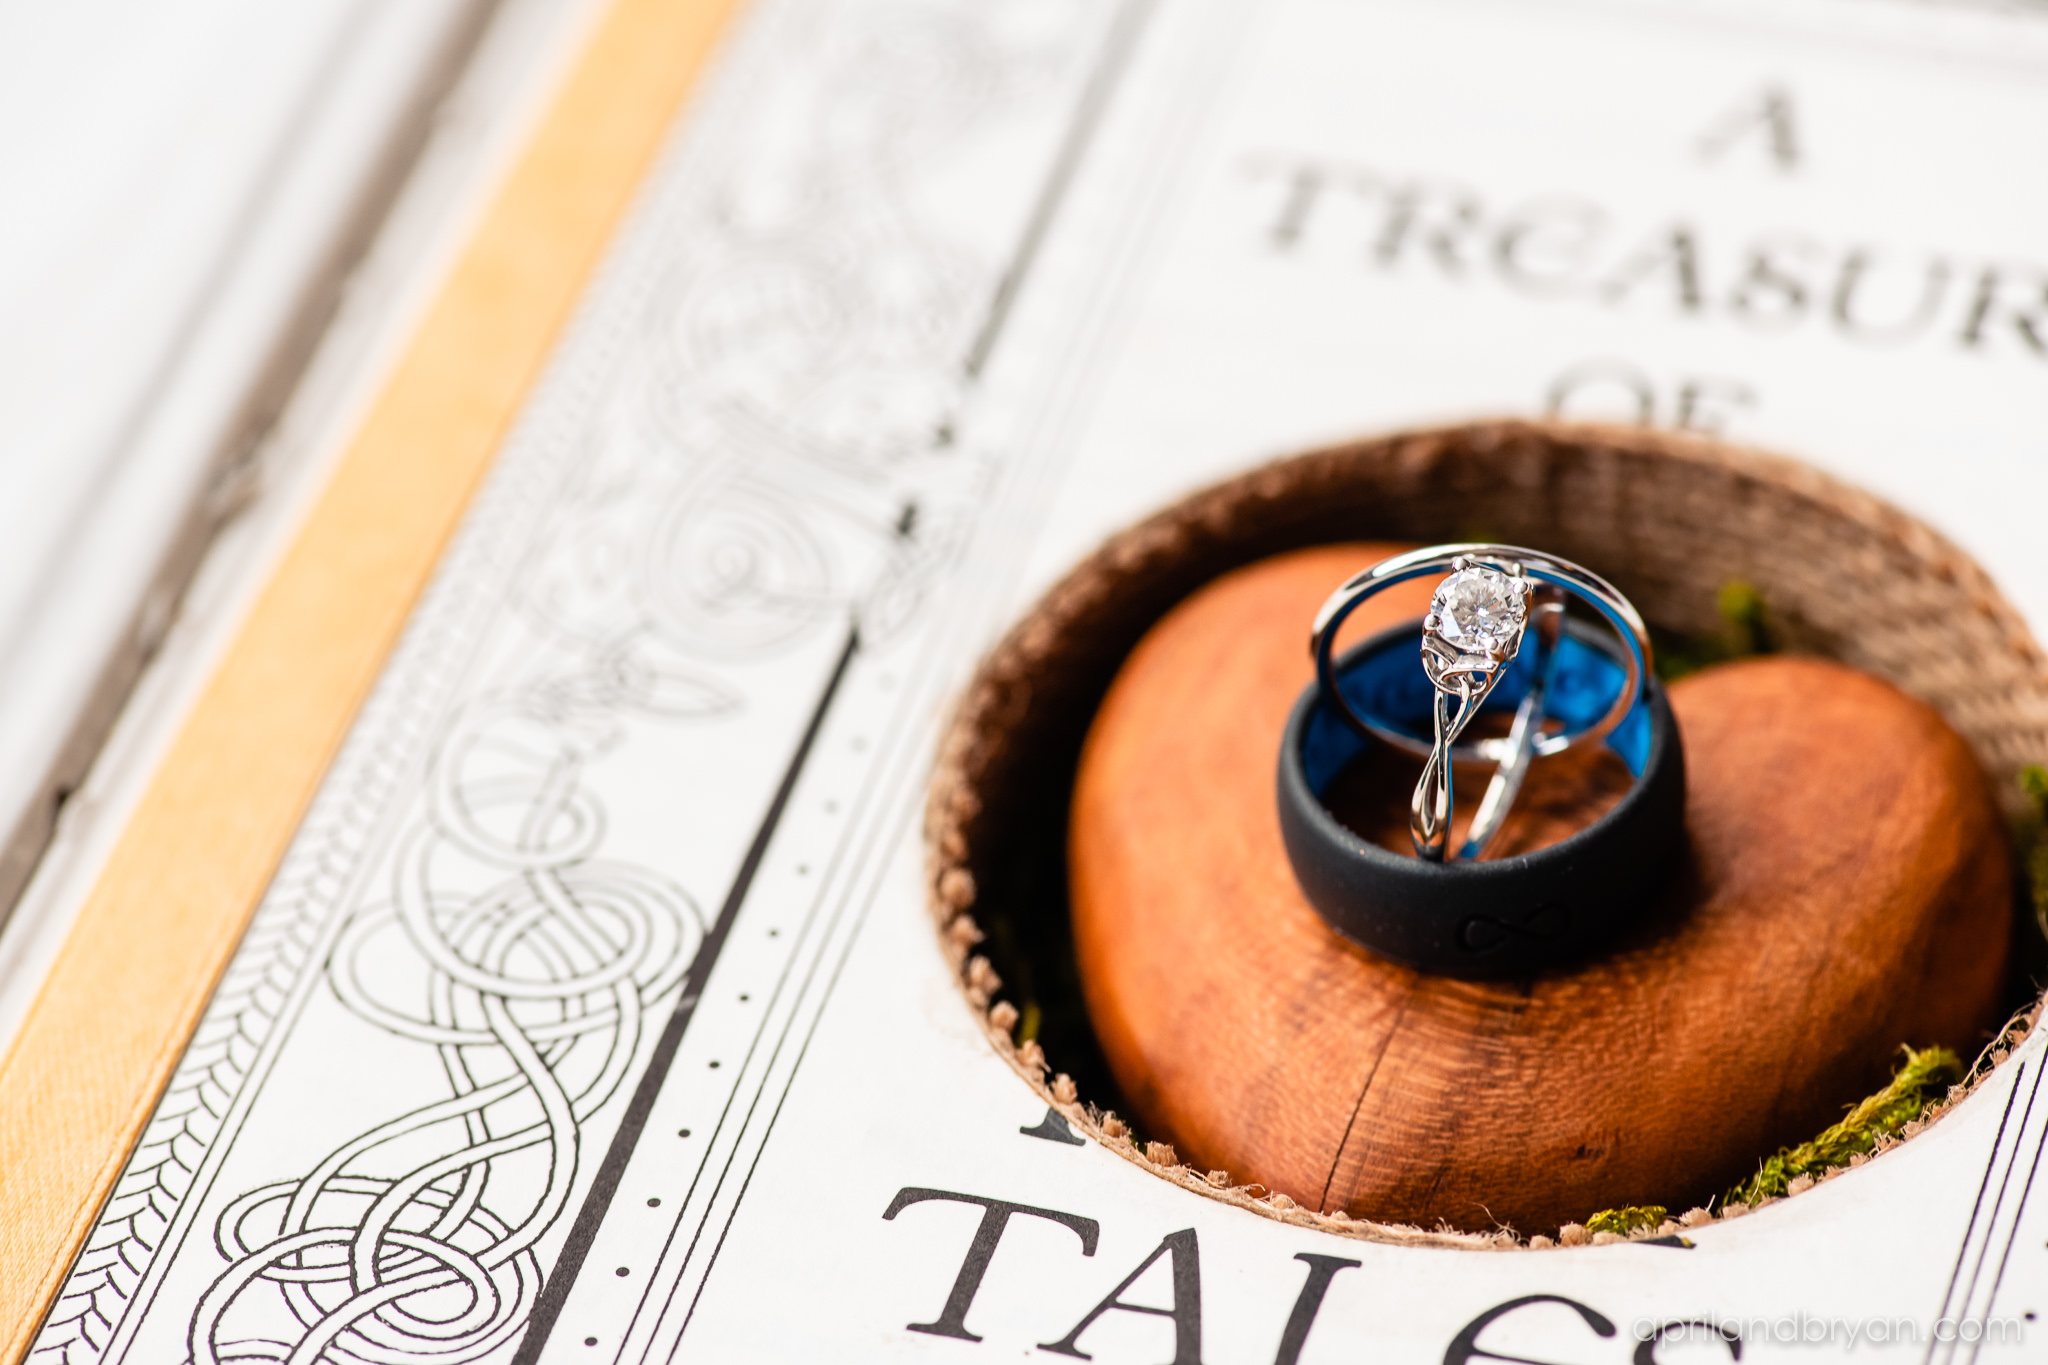 The rings boasted a Celtic design overlapping lines. Nicholas and Rebecca Fasnacht tie the not at Tellus360 on November 1, 2019. Captured by April & Bryan Photography and featured on Dream Weddings.